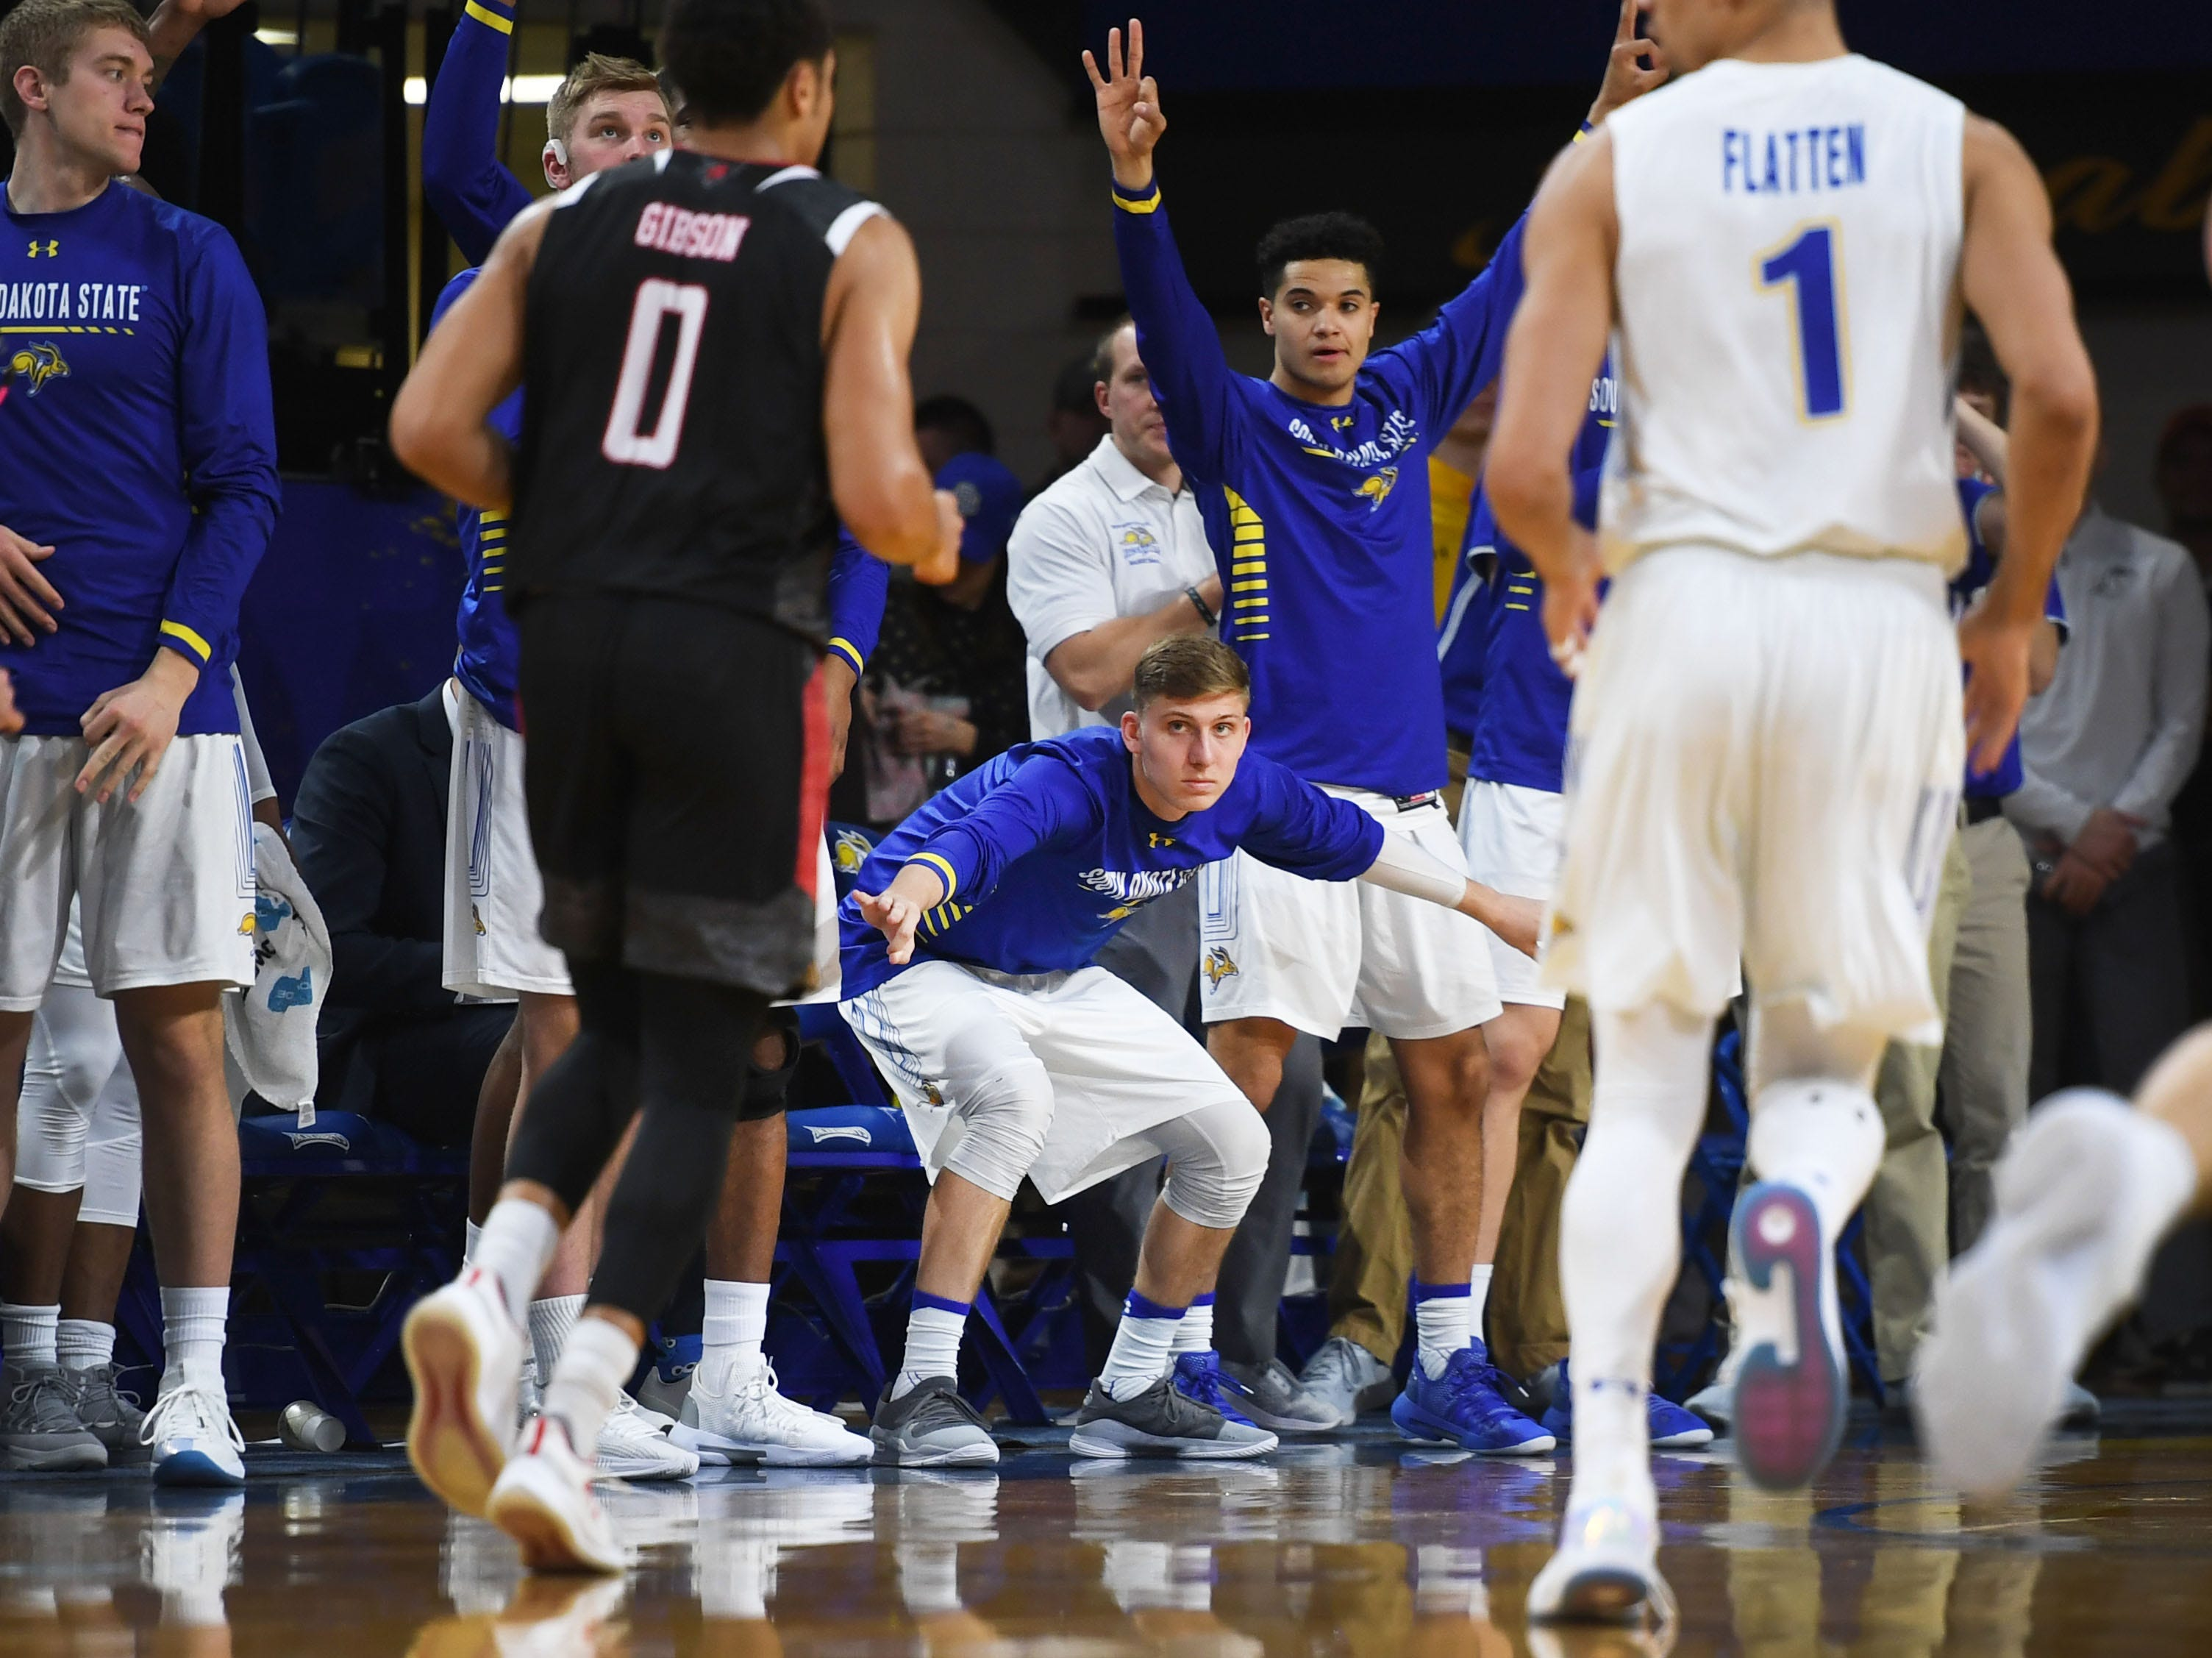 SDSU's sideline celebrates during the game against Omaha Saturday, Jan. 26, at Frost Arena in Brookings.